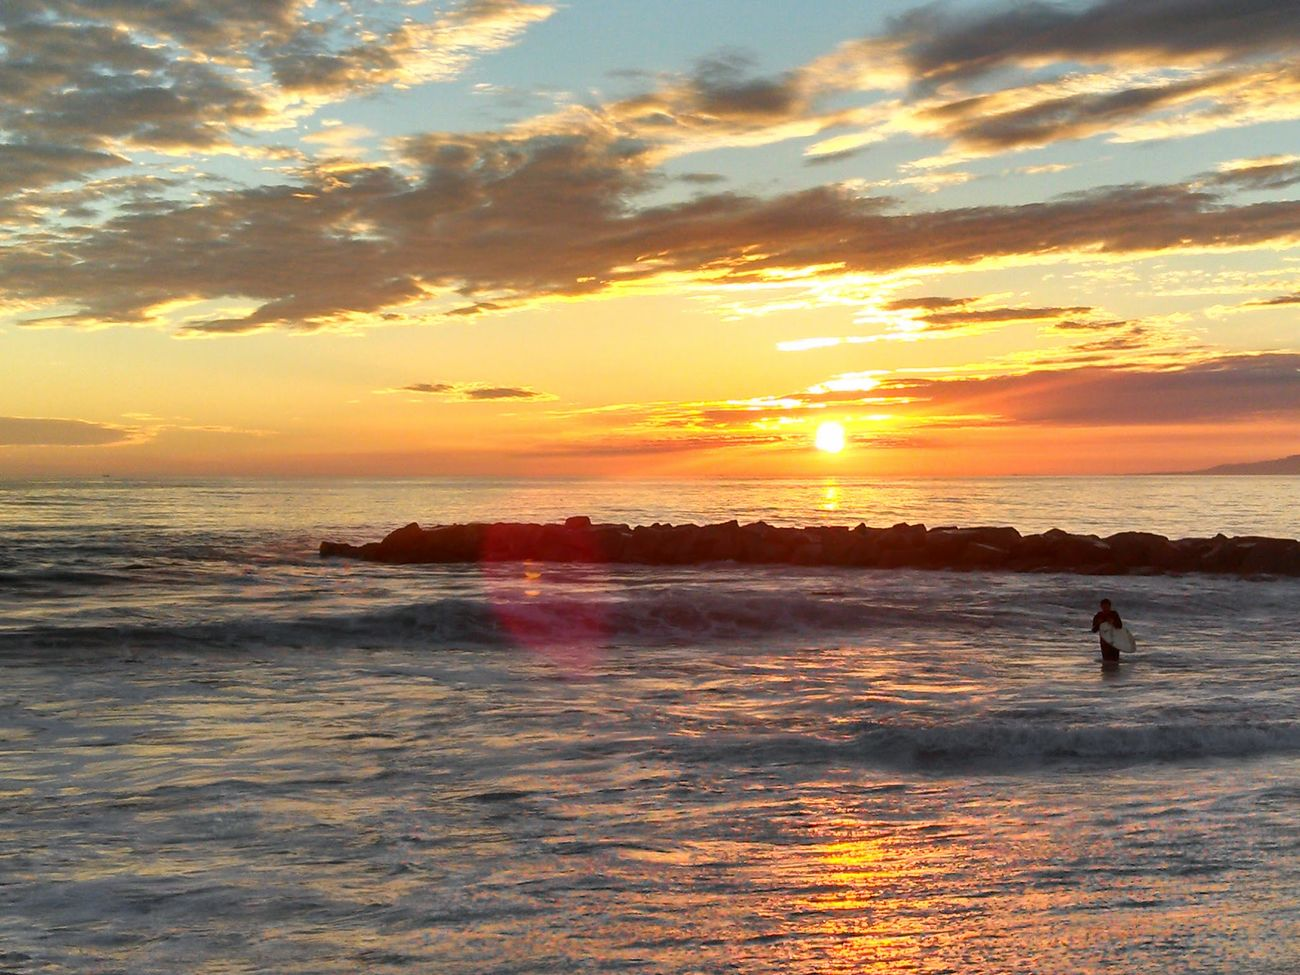 Newport Beach So Cal Summer Sunset Surfing Ocean Stunning_shots Taking Photos Travel Picture